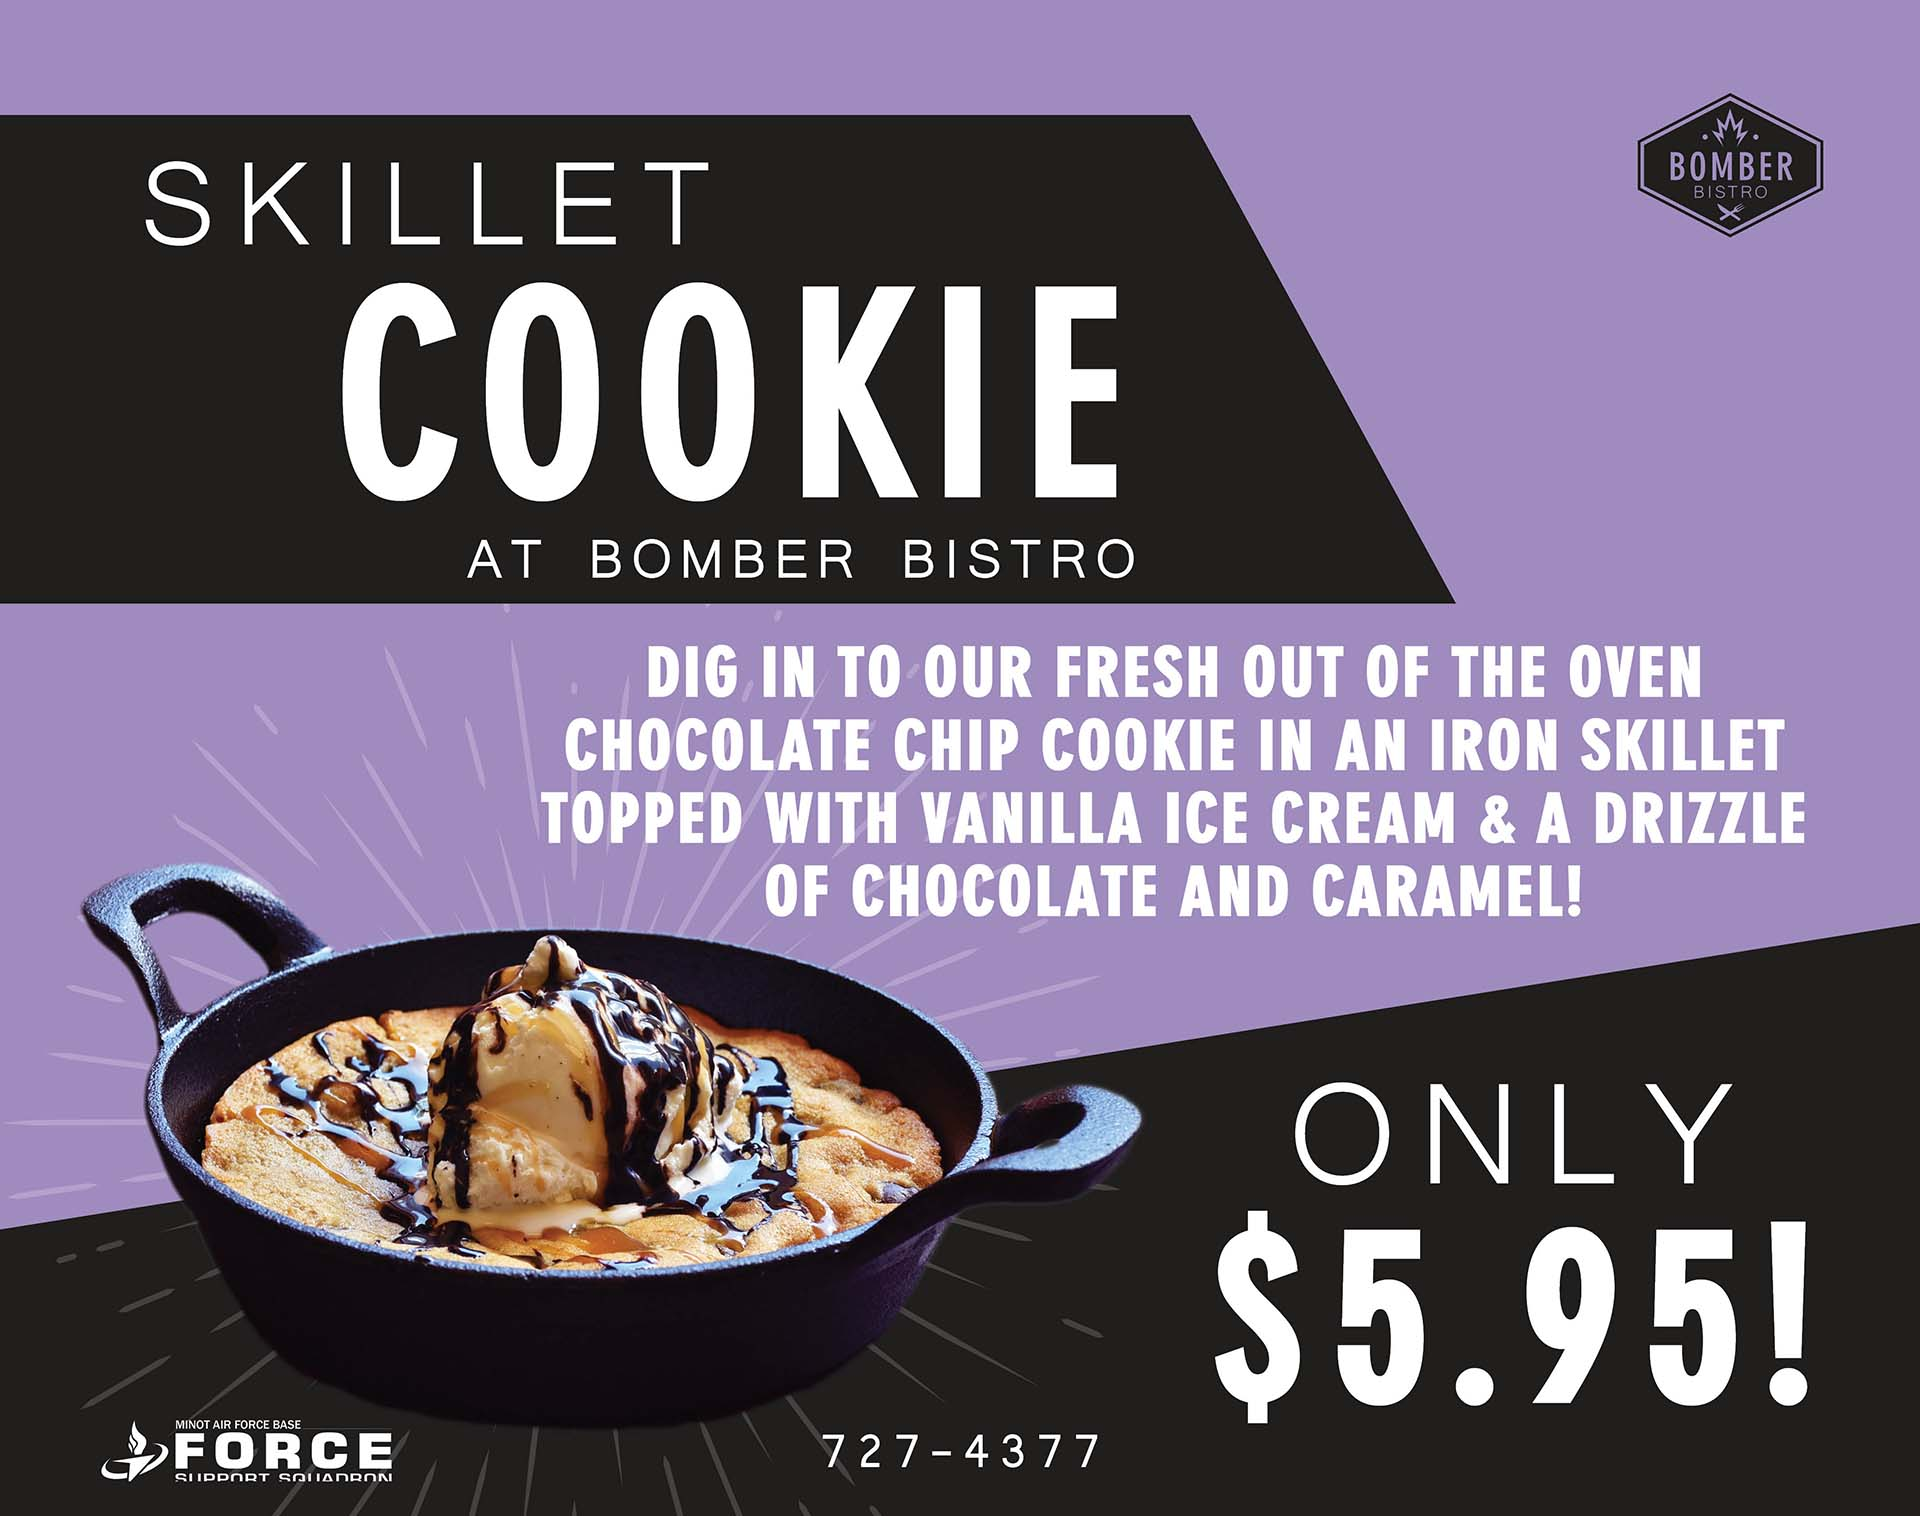 Skillet Cookie - July 20 - Monitor